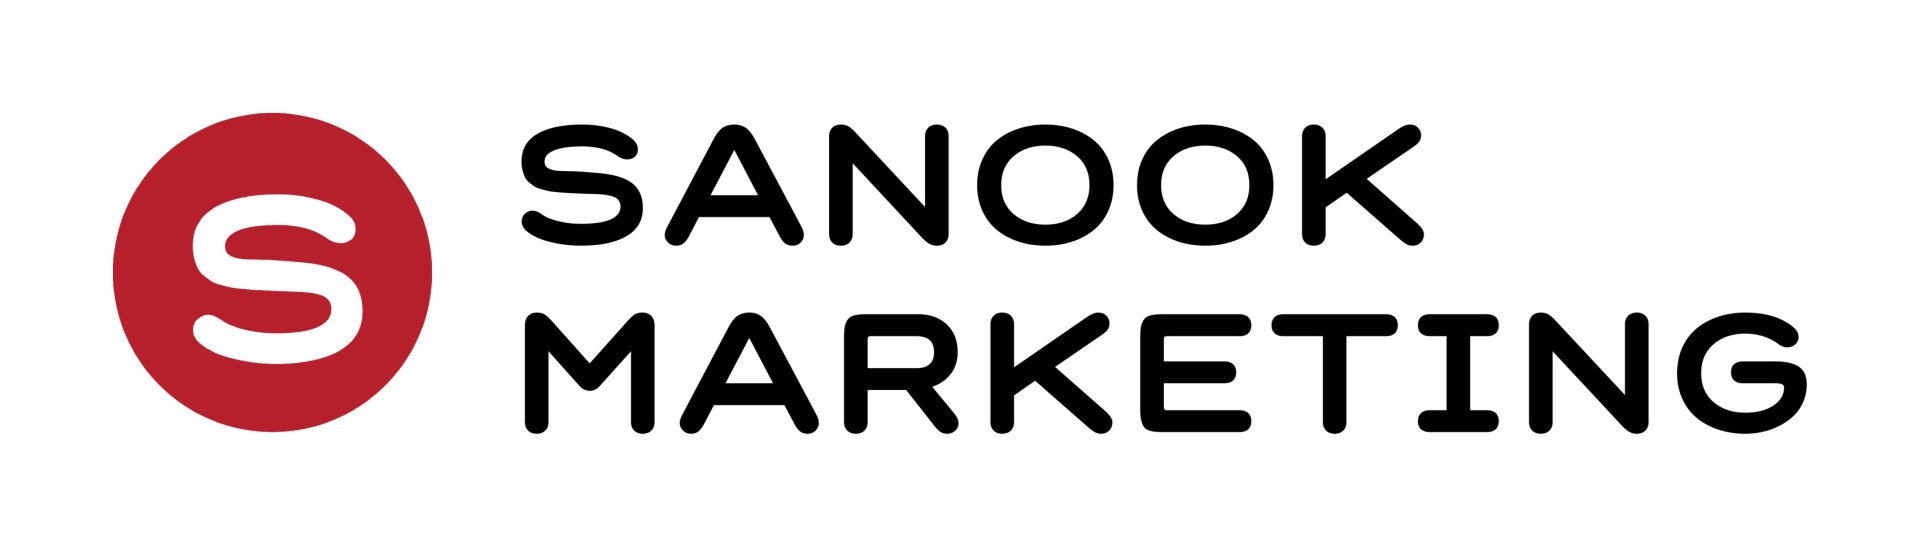 Full Service Digital Marketing Agency Sanook Marketing Helps Residential & Commercial Cleaning Companies Skyrocket their Sales